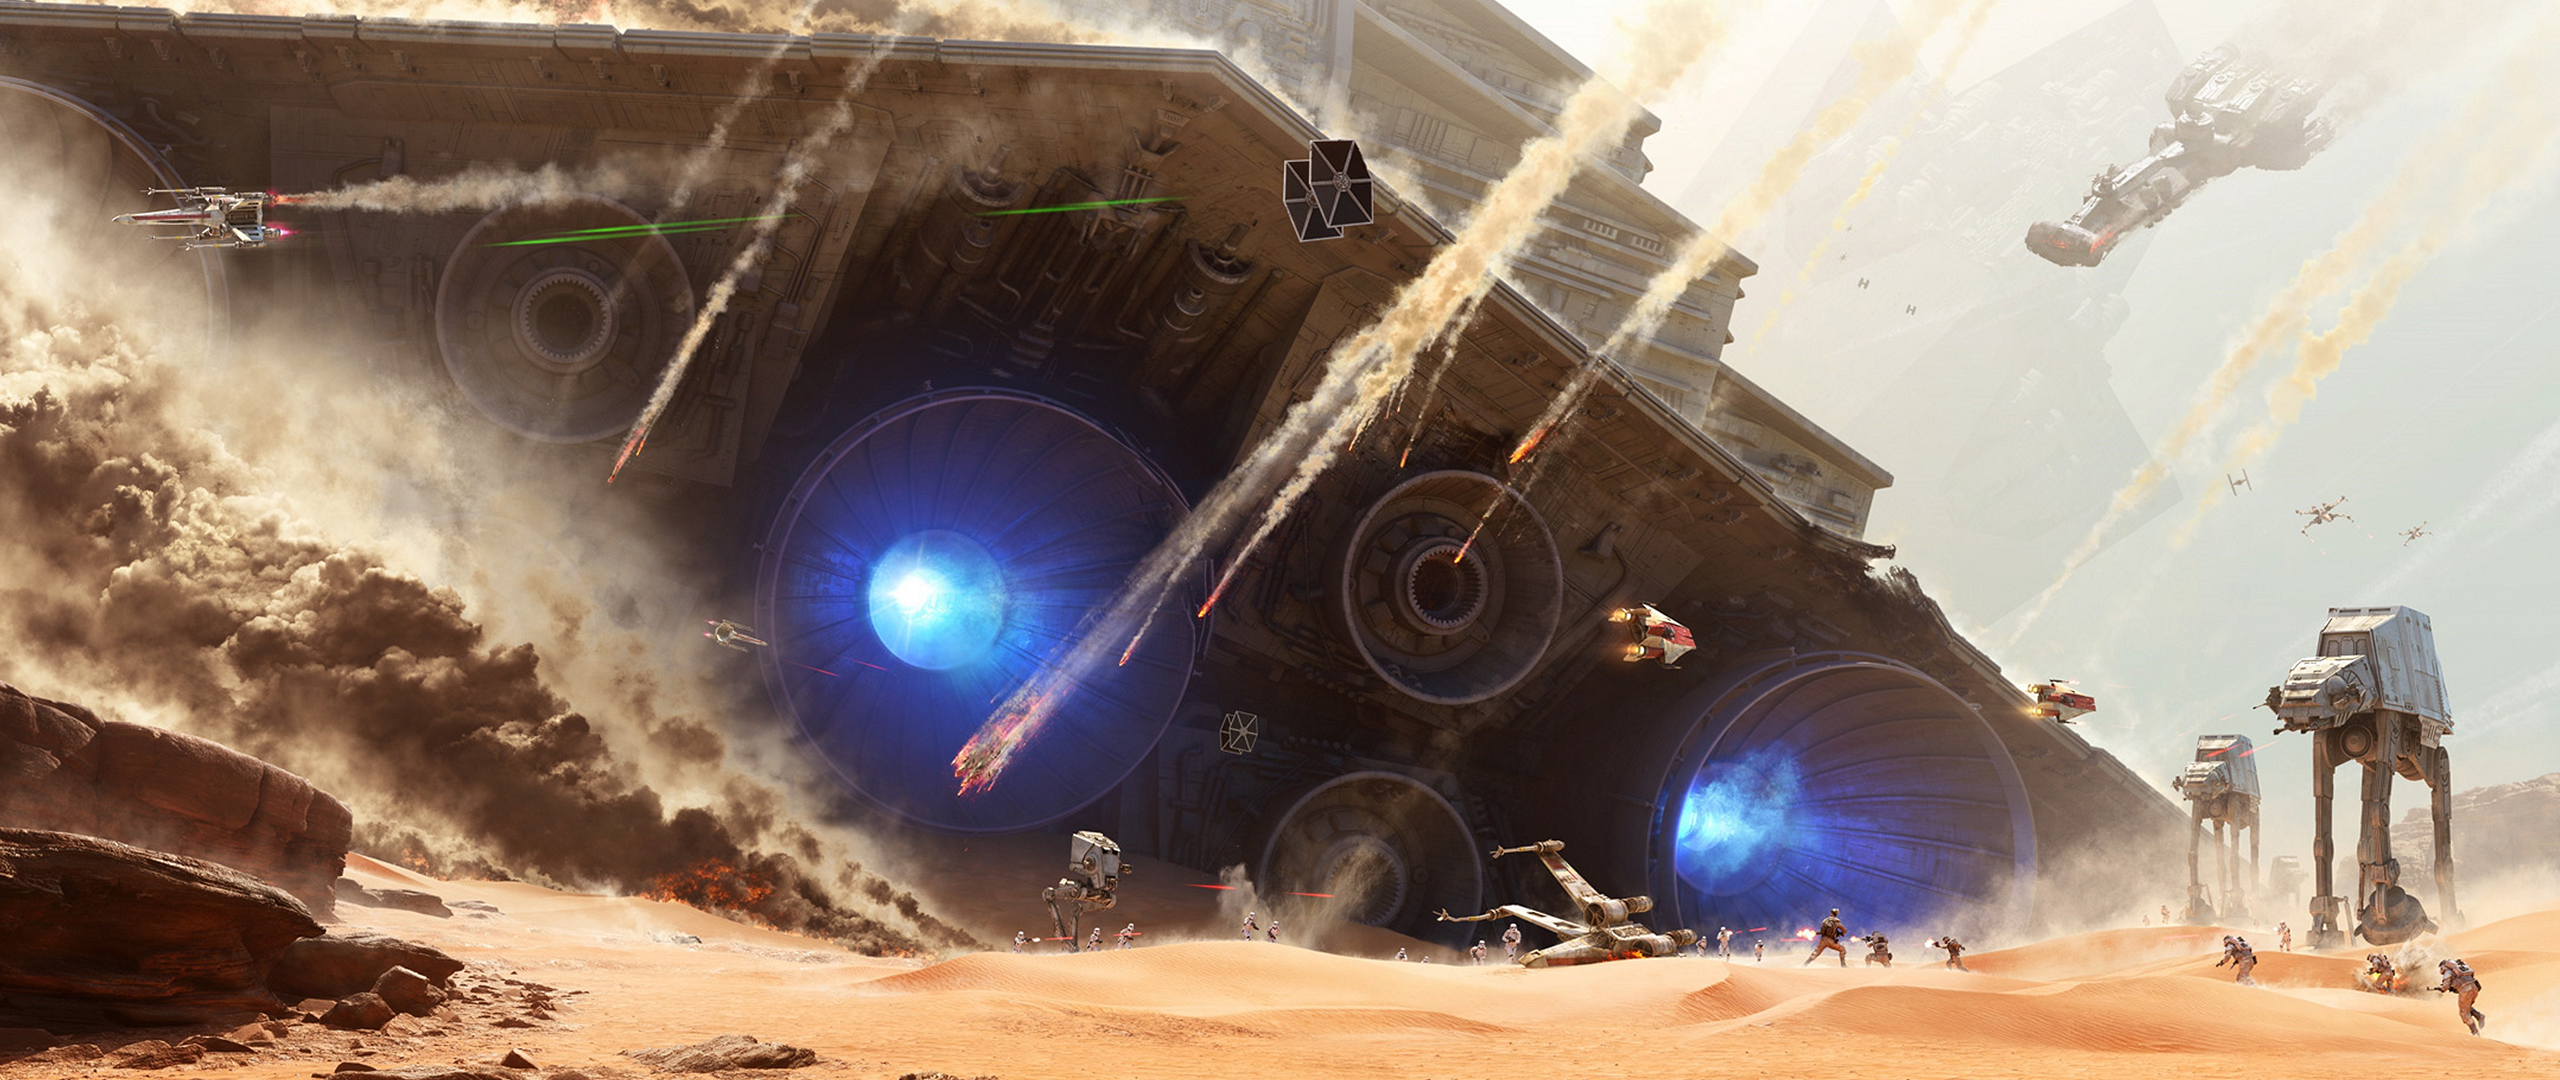 General 2560x1080 ultrawide Star Wars video game art battle AT-AT X-wing TIE Fighter science fiction Star Wars: Battlefront video games PC gaming